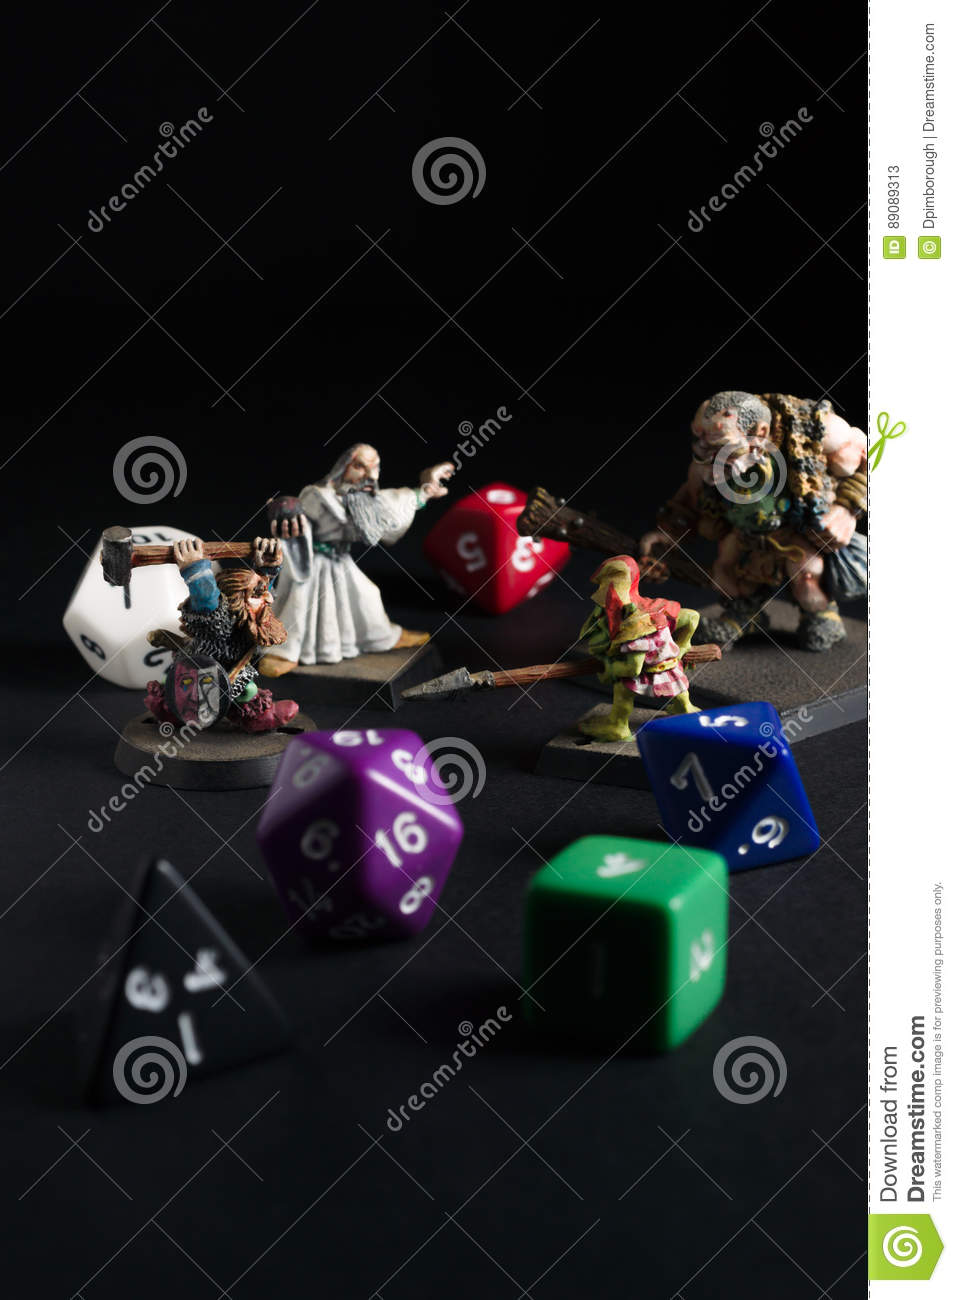 Dungeons And Dragons Figures And Dice Editorial Stock Photo - Image